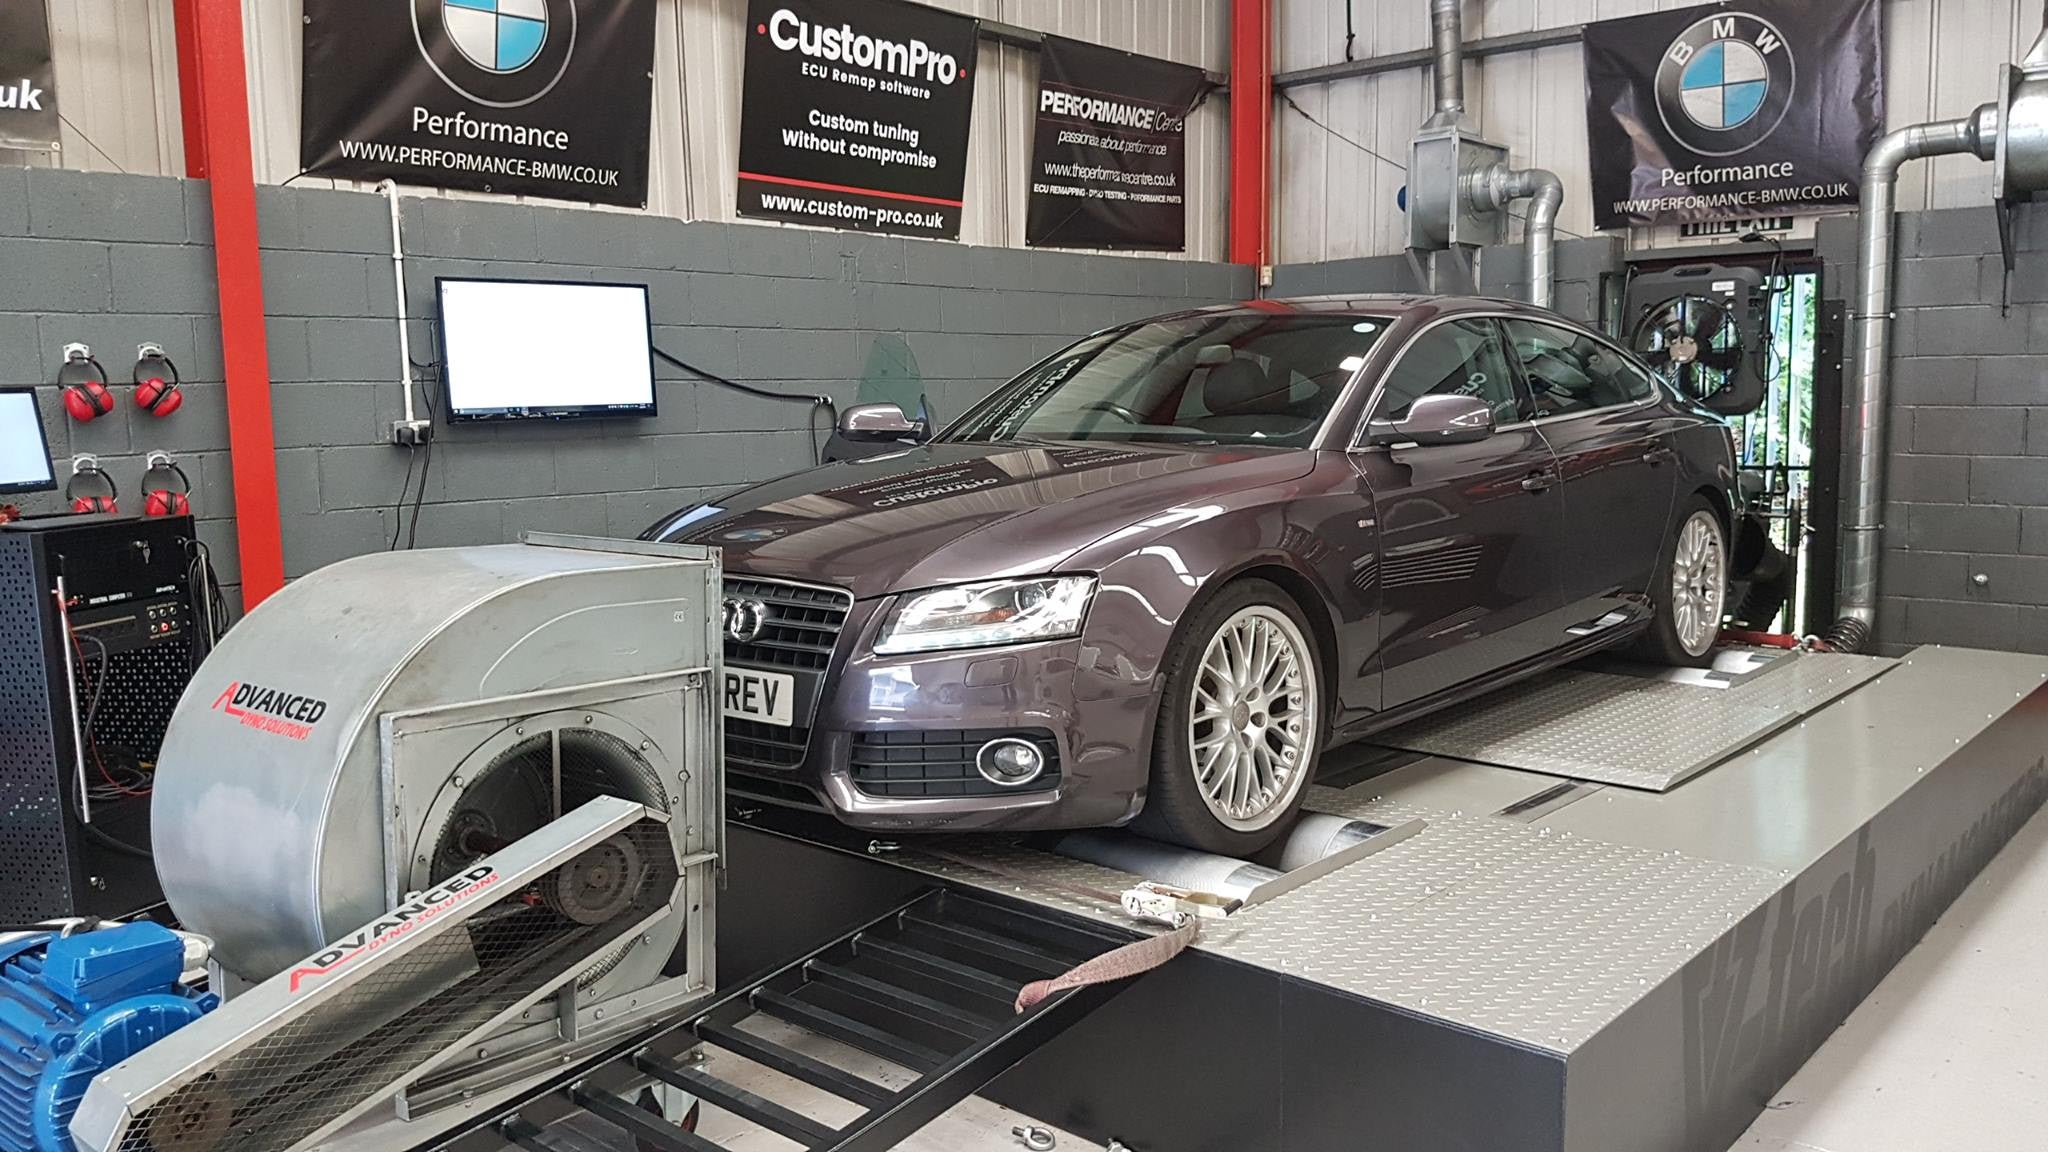 Audi A5 Sportback - CustomPro remap